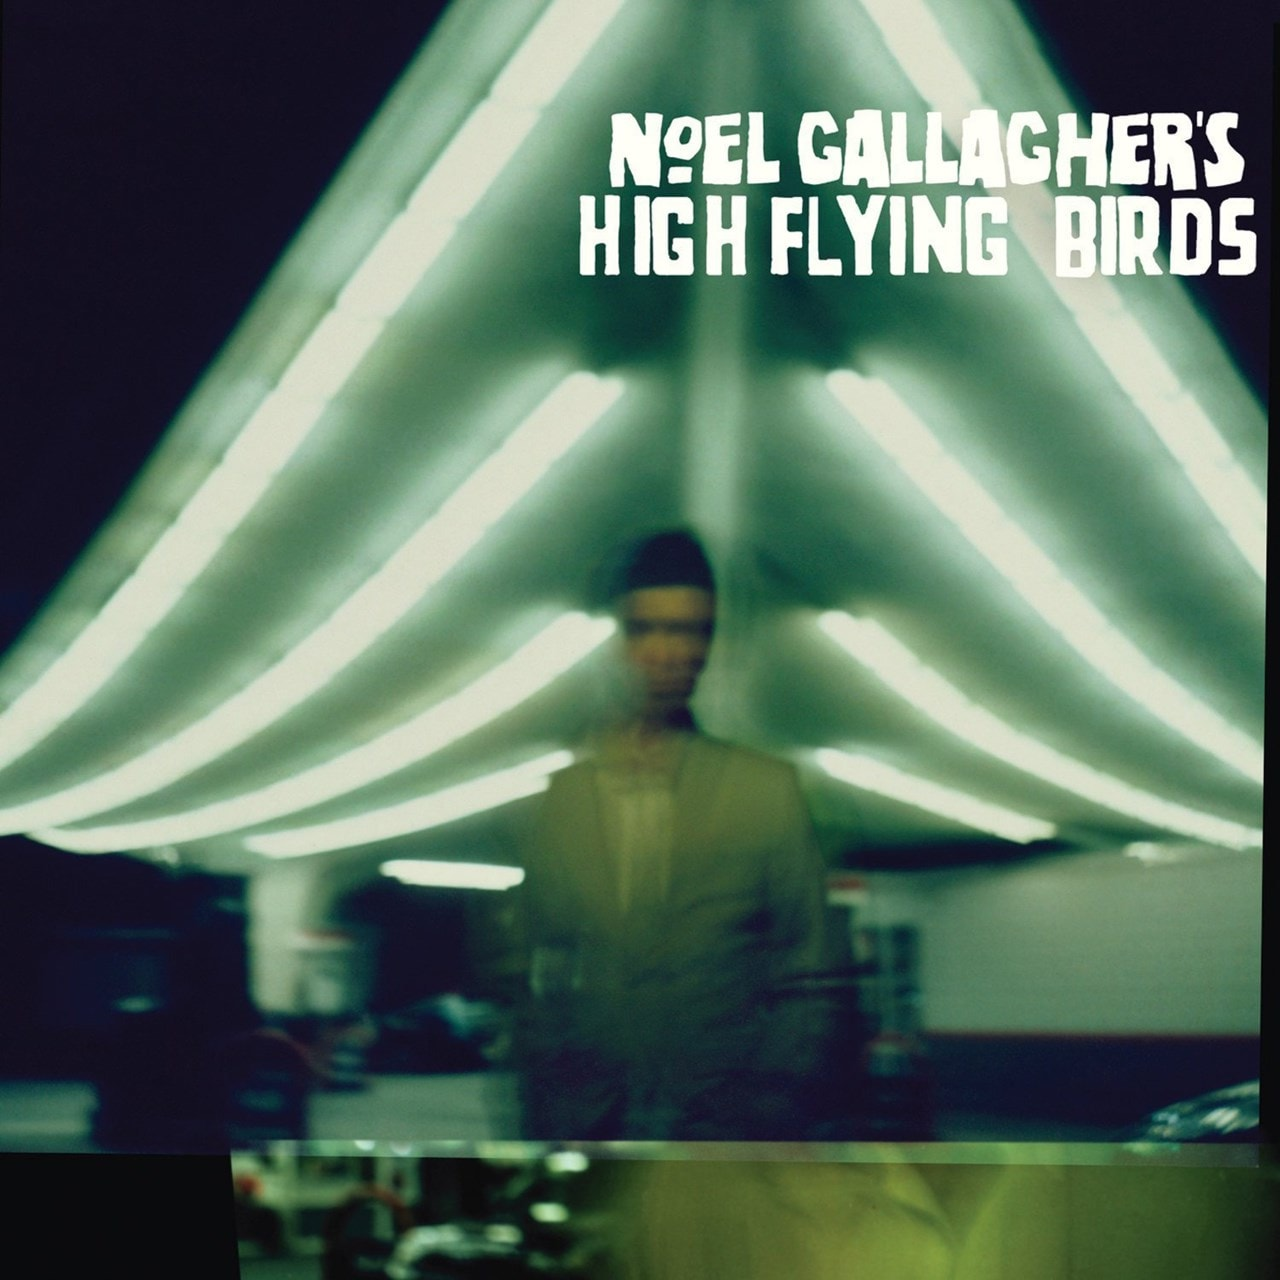 Noel Gallagher's High Flying Birds - 1